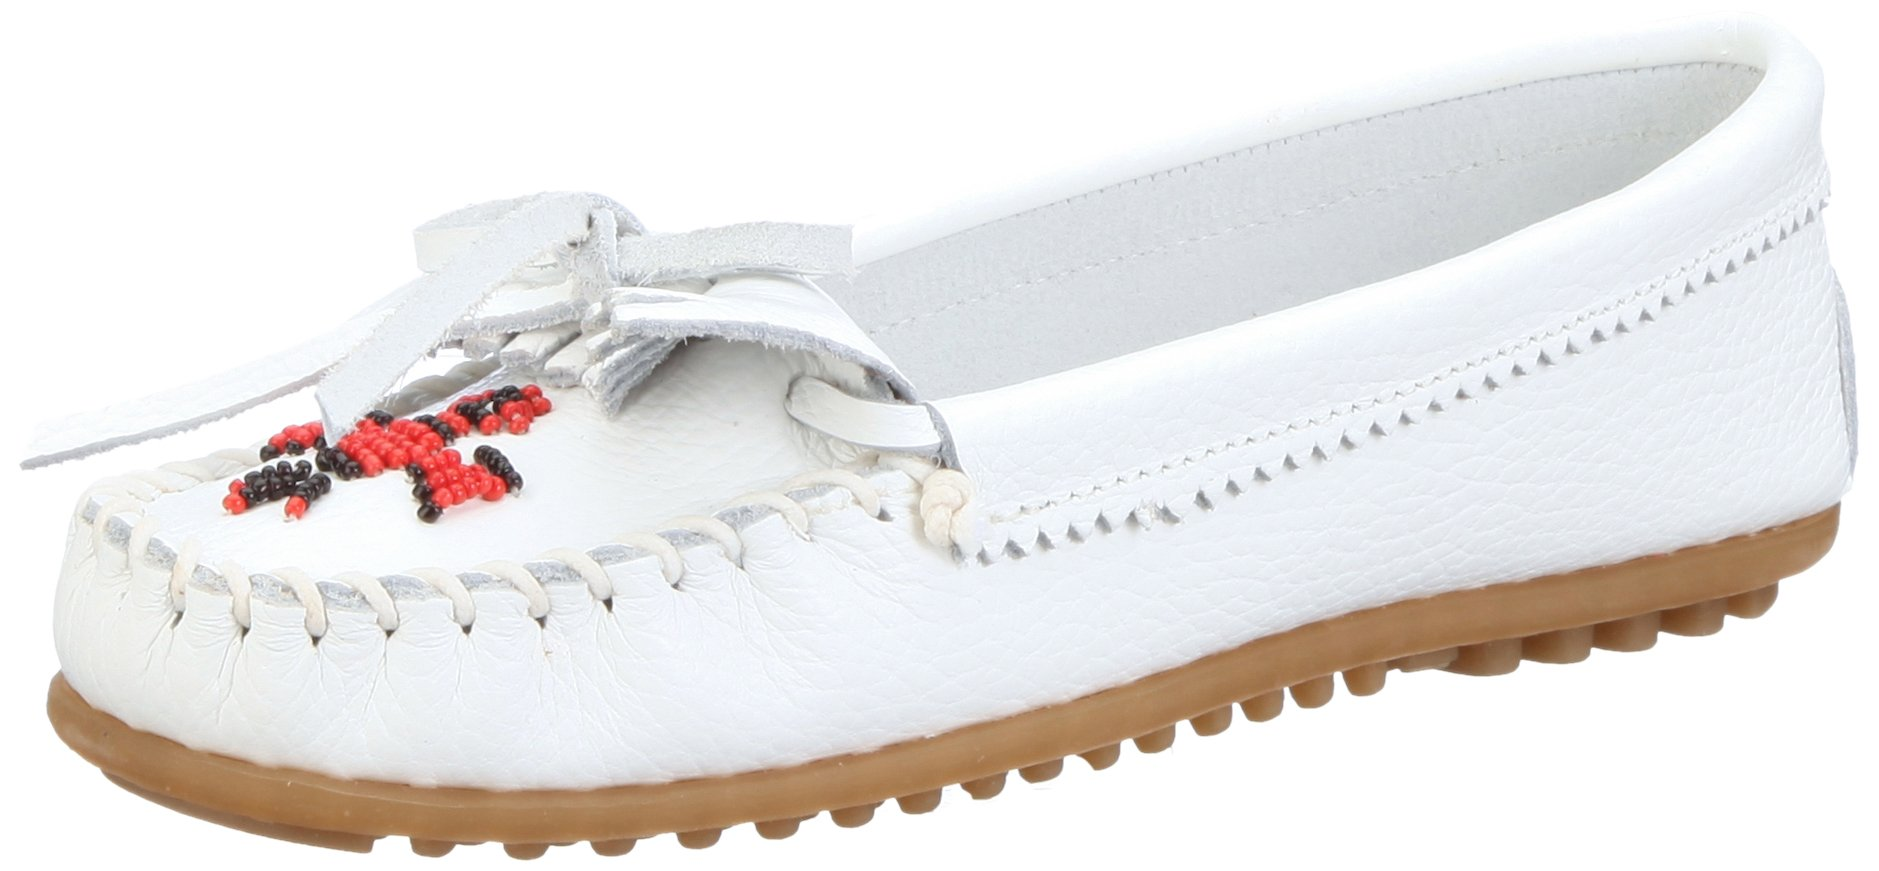 Minnetonka Women's Thunderbird II Moccasin,White Smooth,5.5 M US